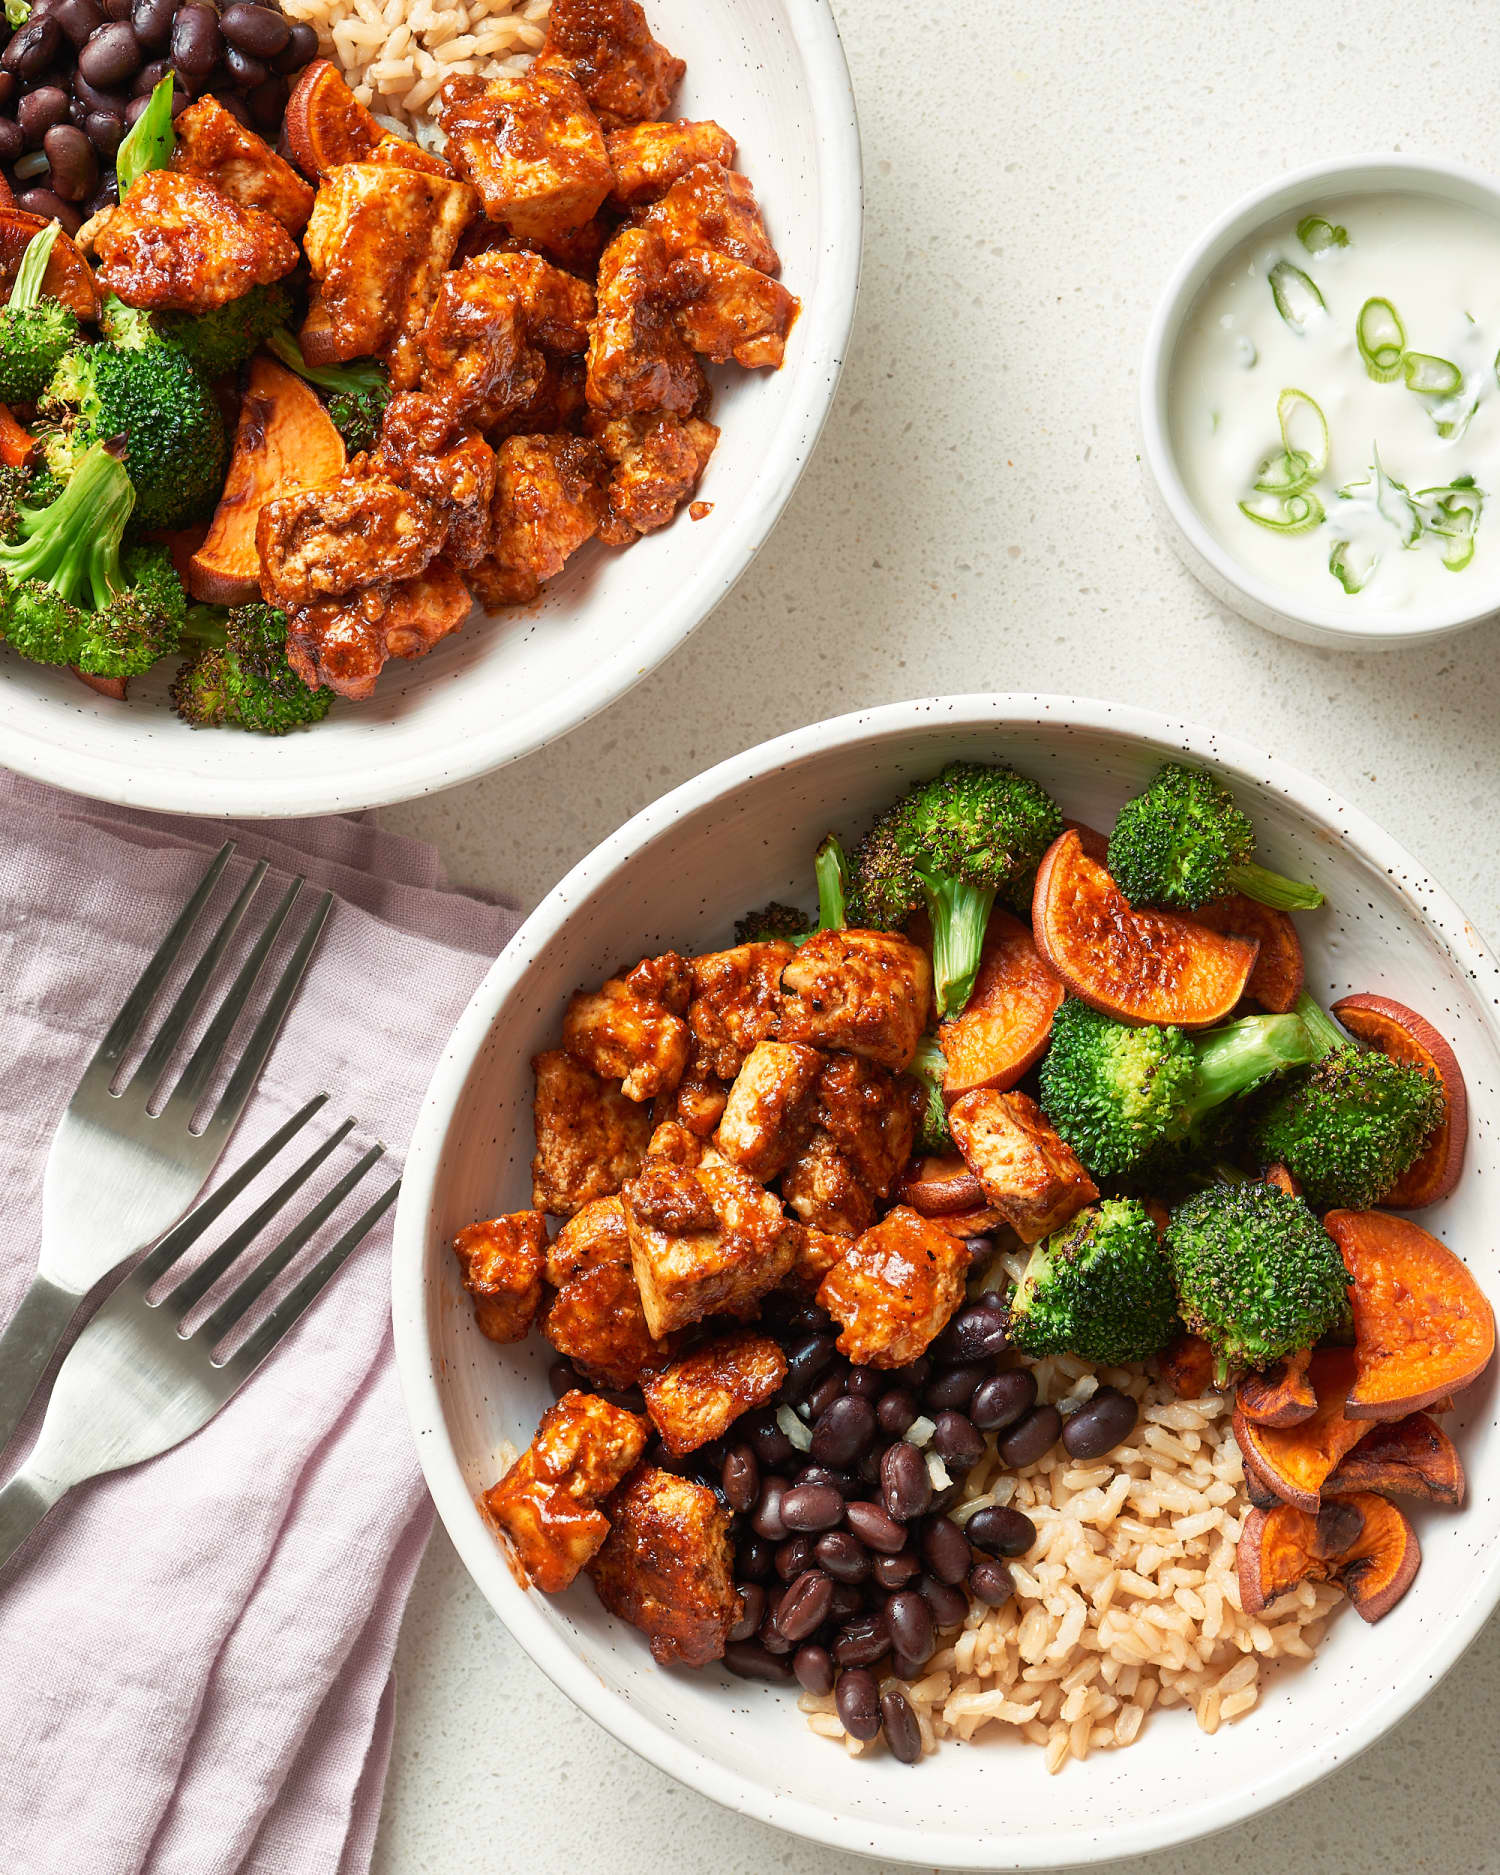 20 High-Protein Dinners You Should Know About